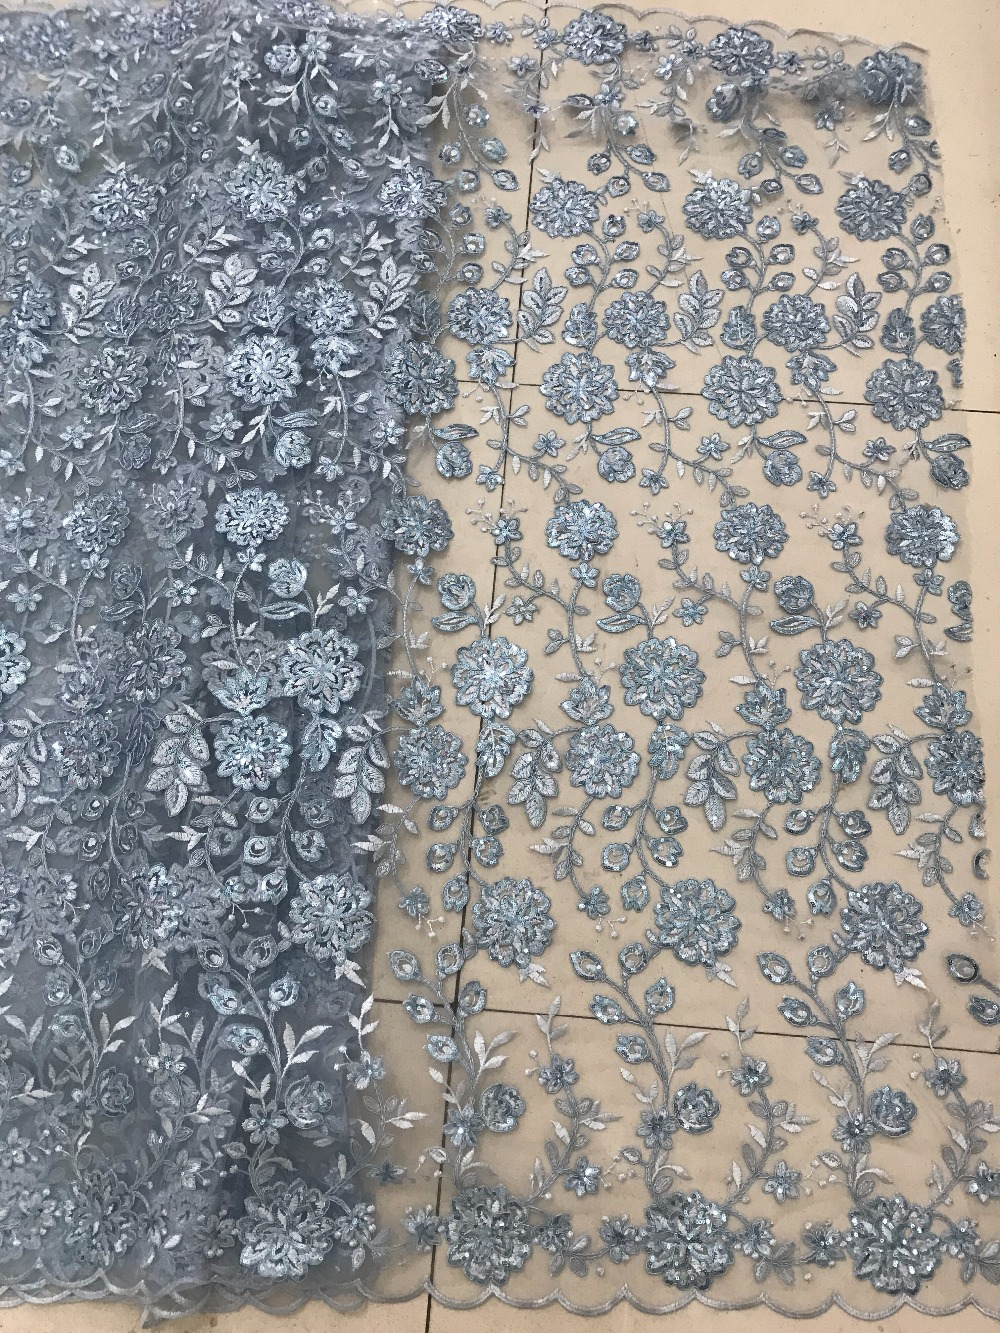 African French Lace Fabric High Quality 2018 Fashion French Sequins Lace Fabric for Women Dress in Lace from Home Garden